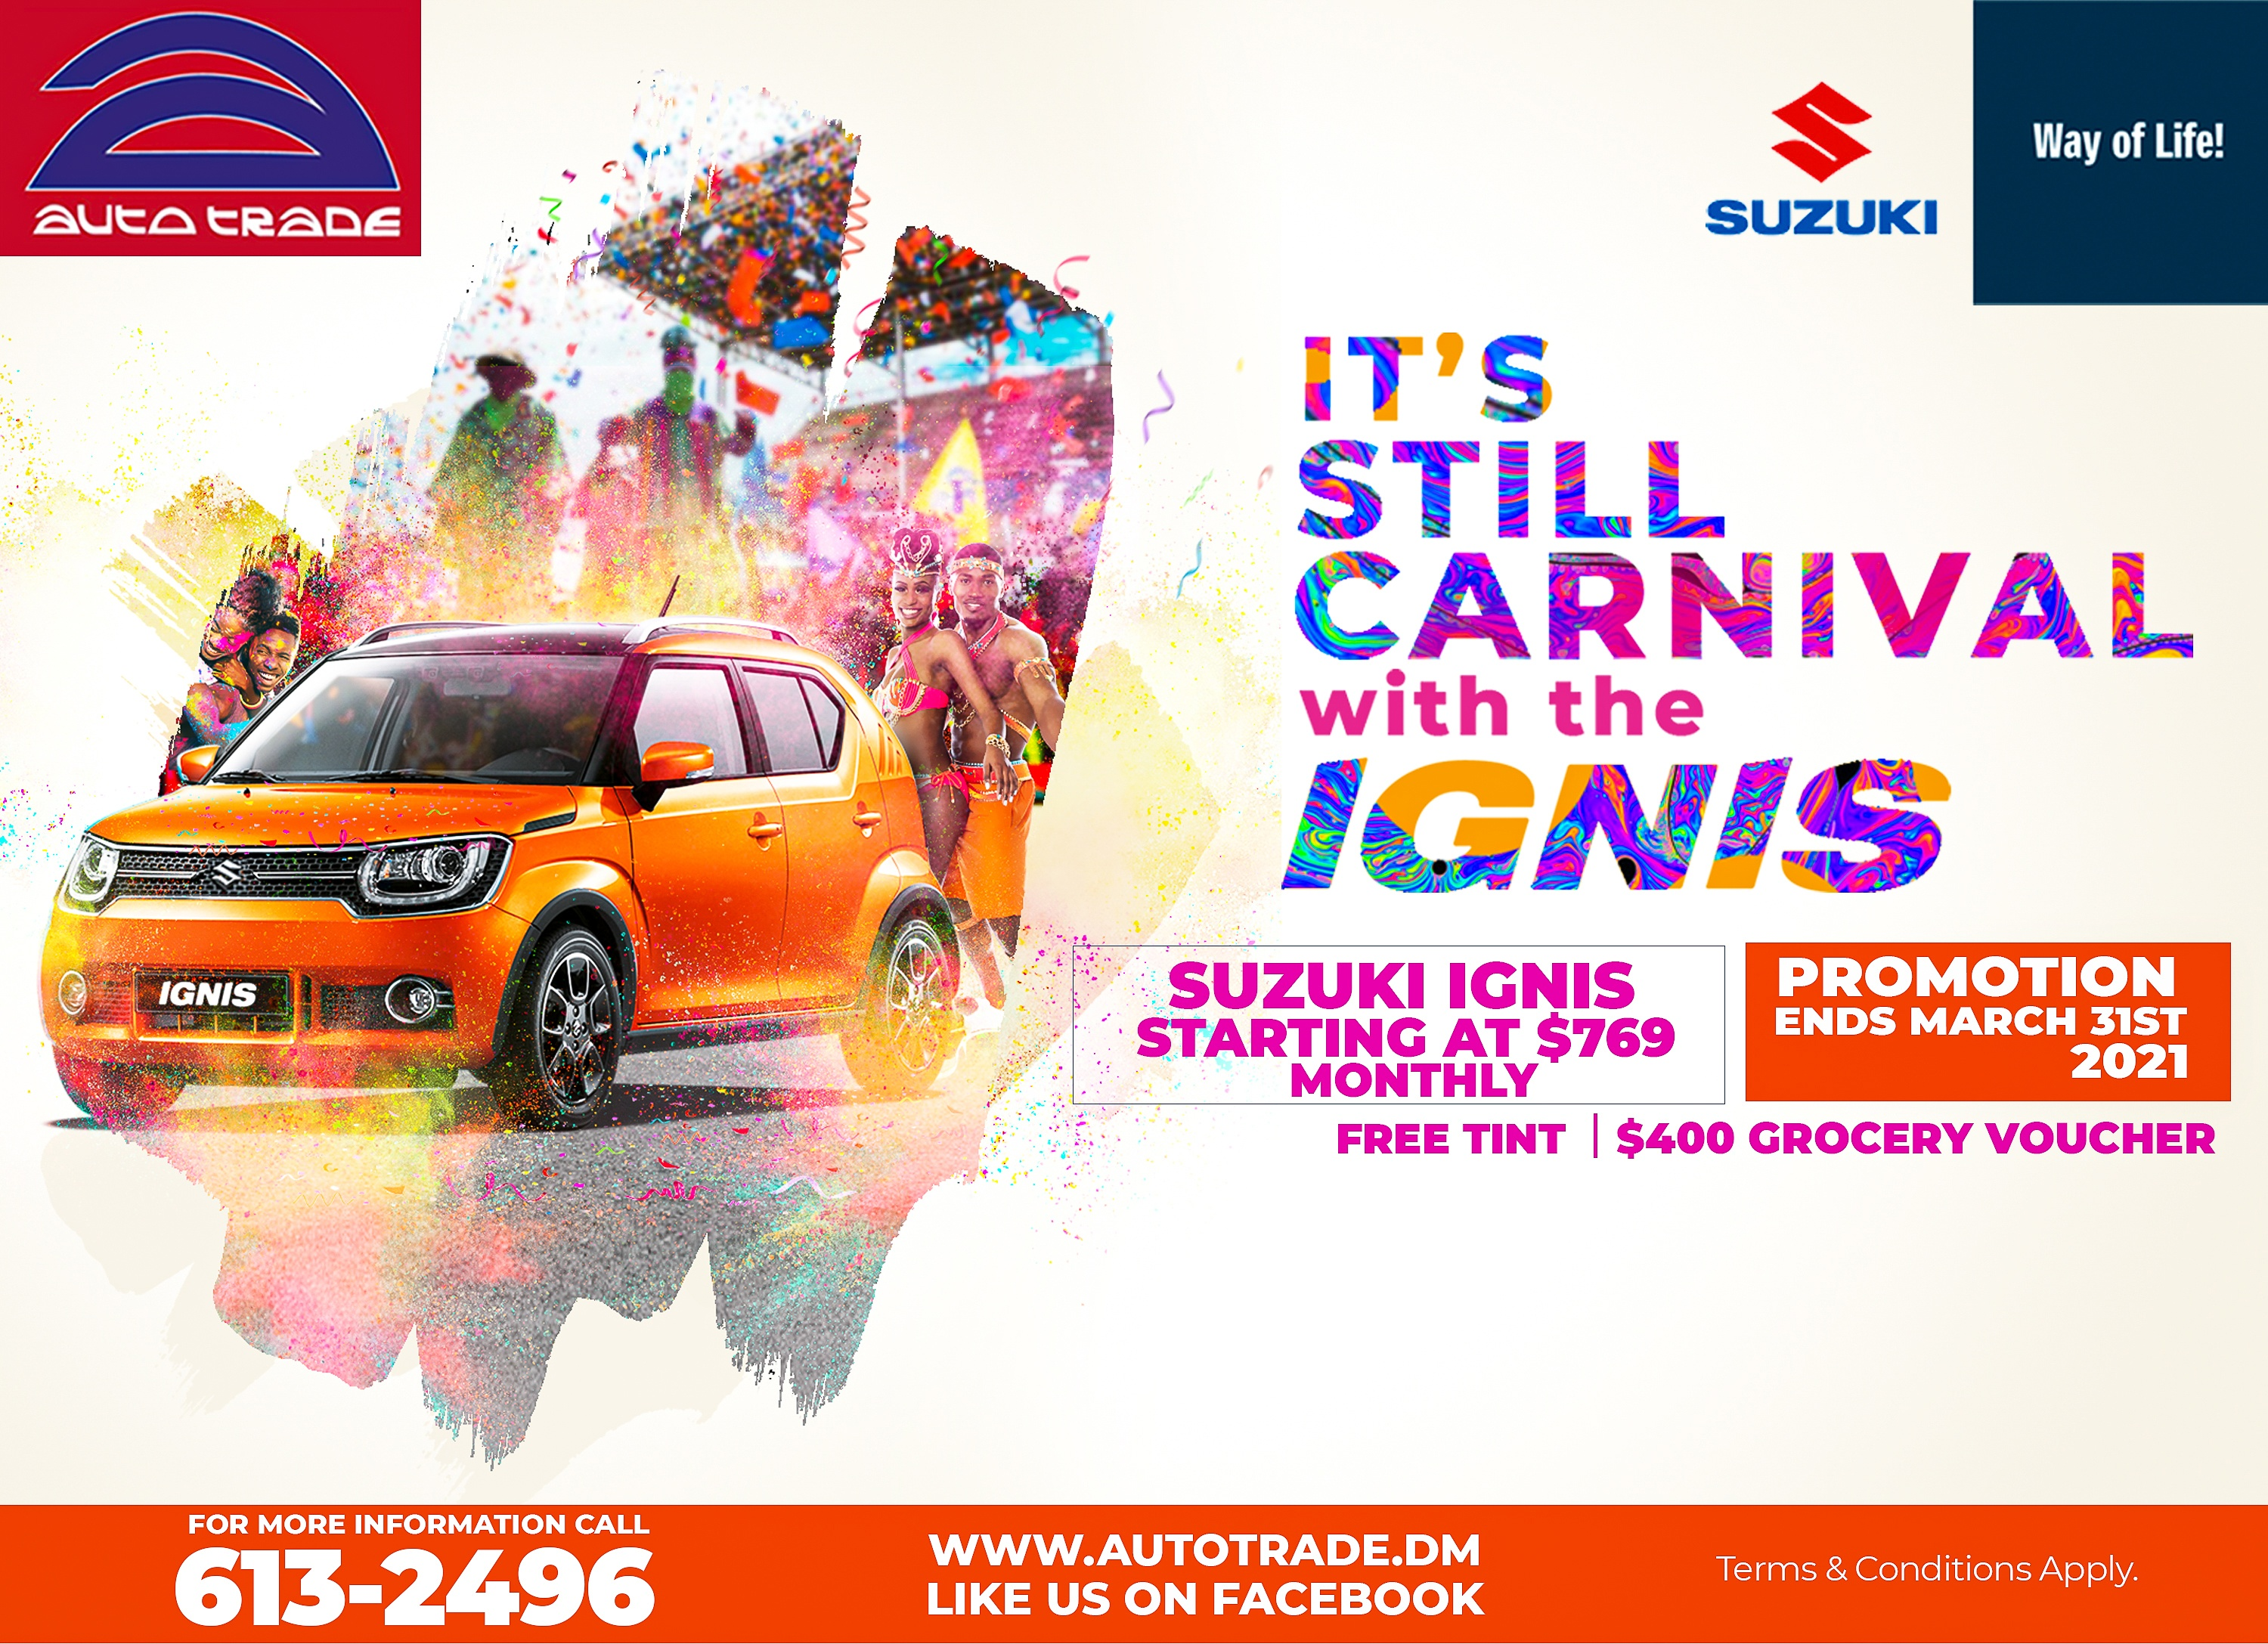 A Suzuki Carnival with Ignis